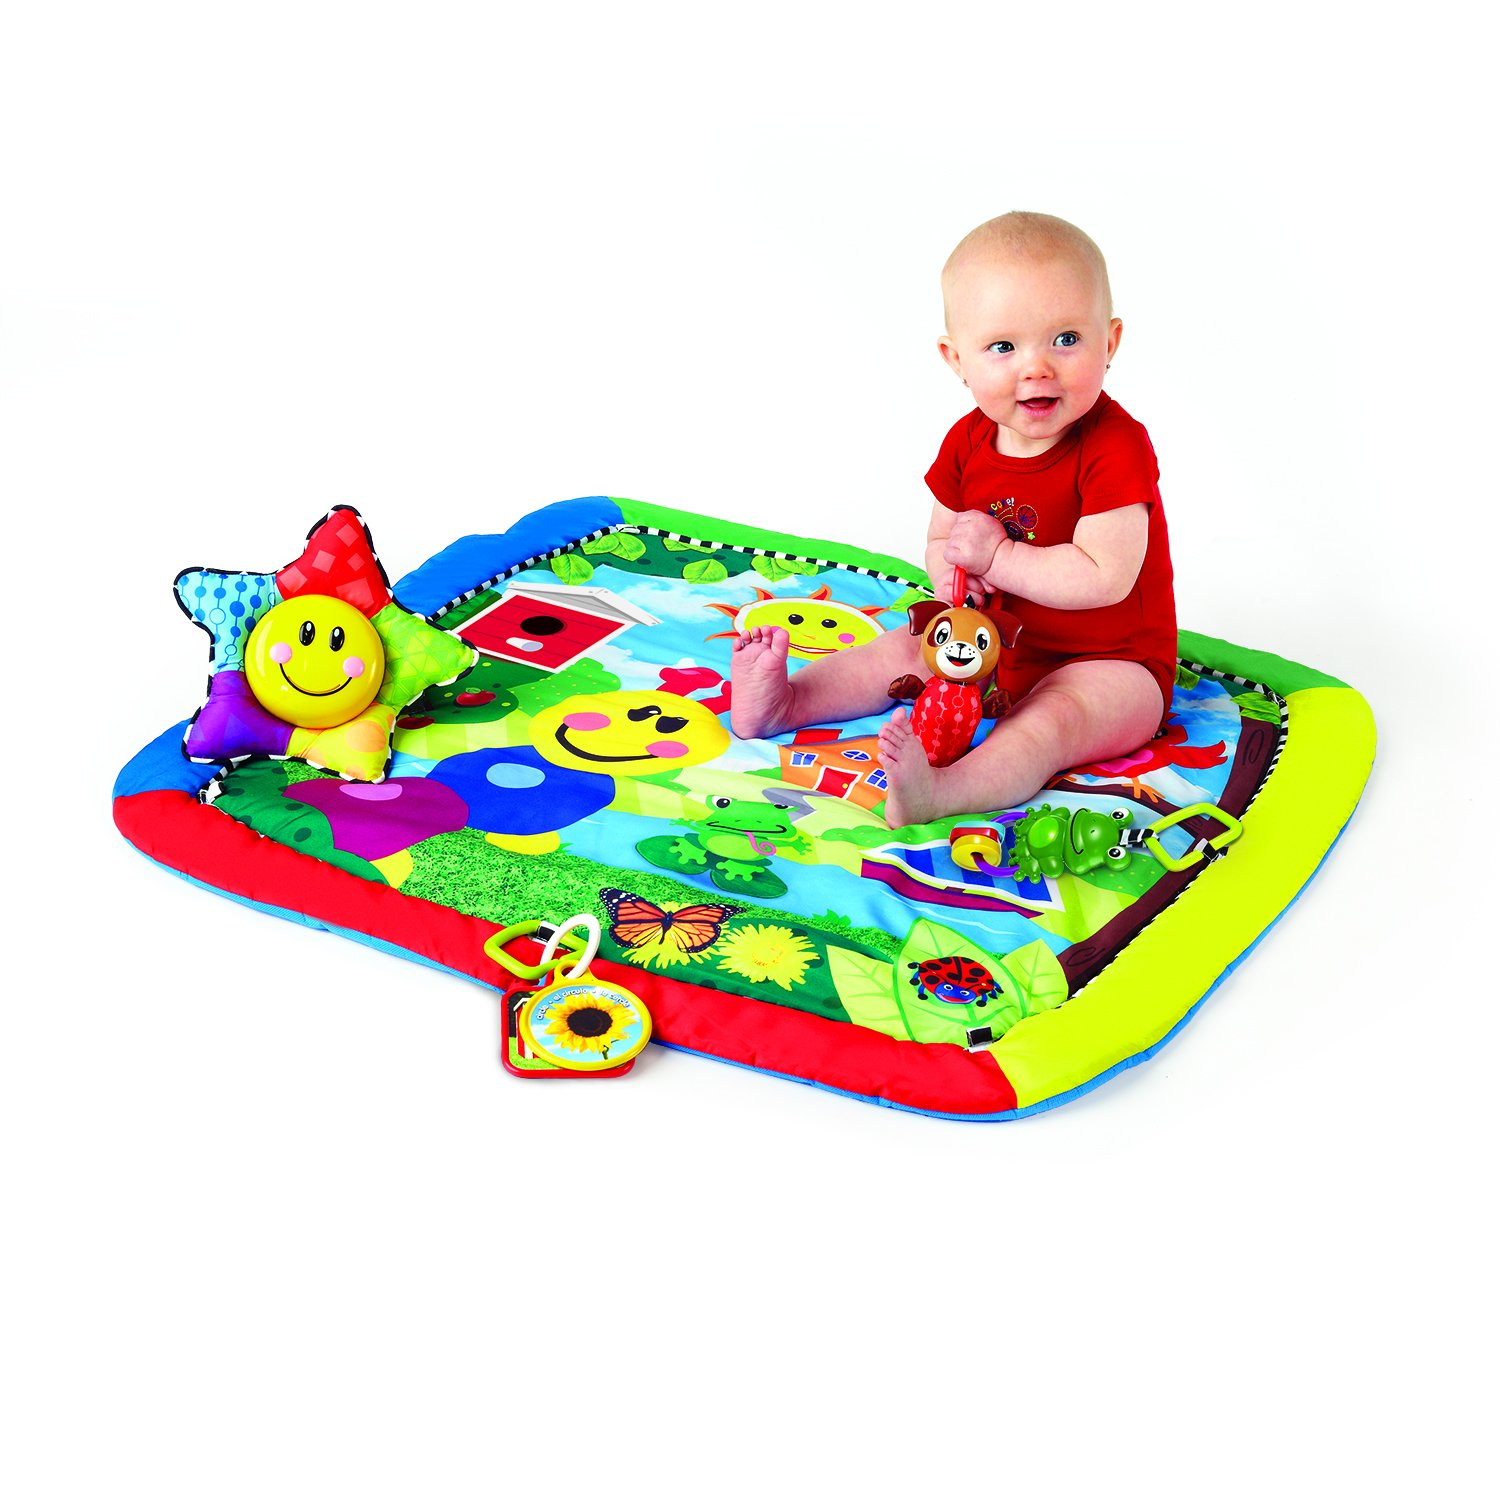 Amazon Baby Einstein Caterpillar and Friends Play Gym